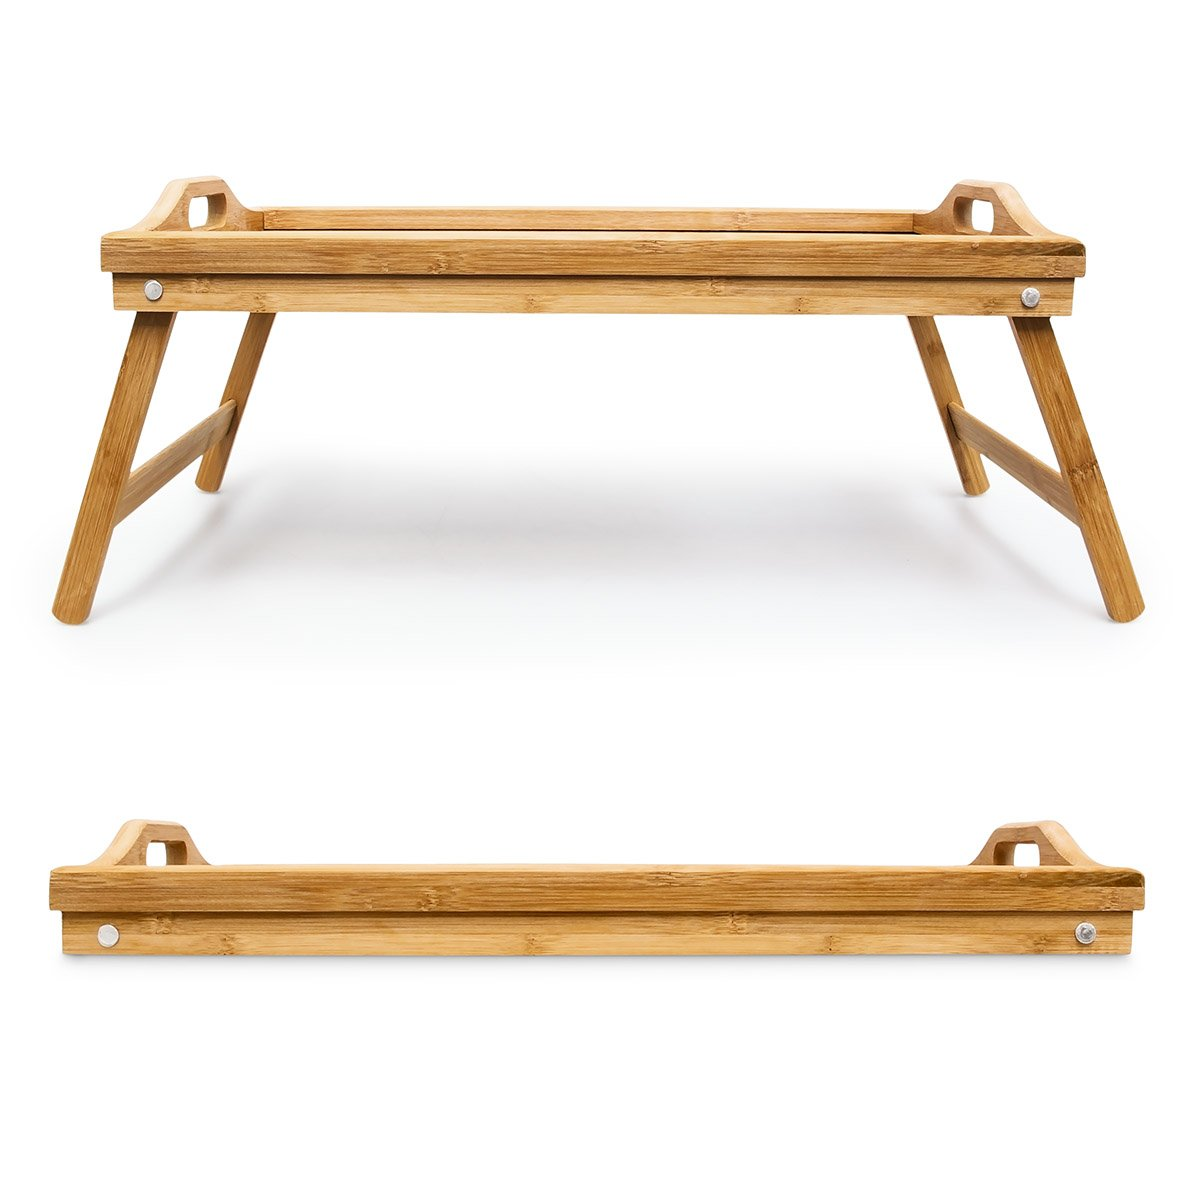 Amazon.com | Relaxdays Bamboo Folding Serving Tray Size: 21.5 x 47 x 27 cm Foldable Bed Table Serving Tray for Breakfast and Snacks and Lap Table or Knee ...